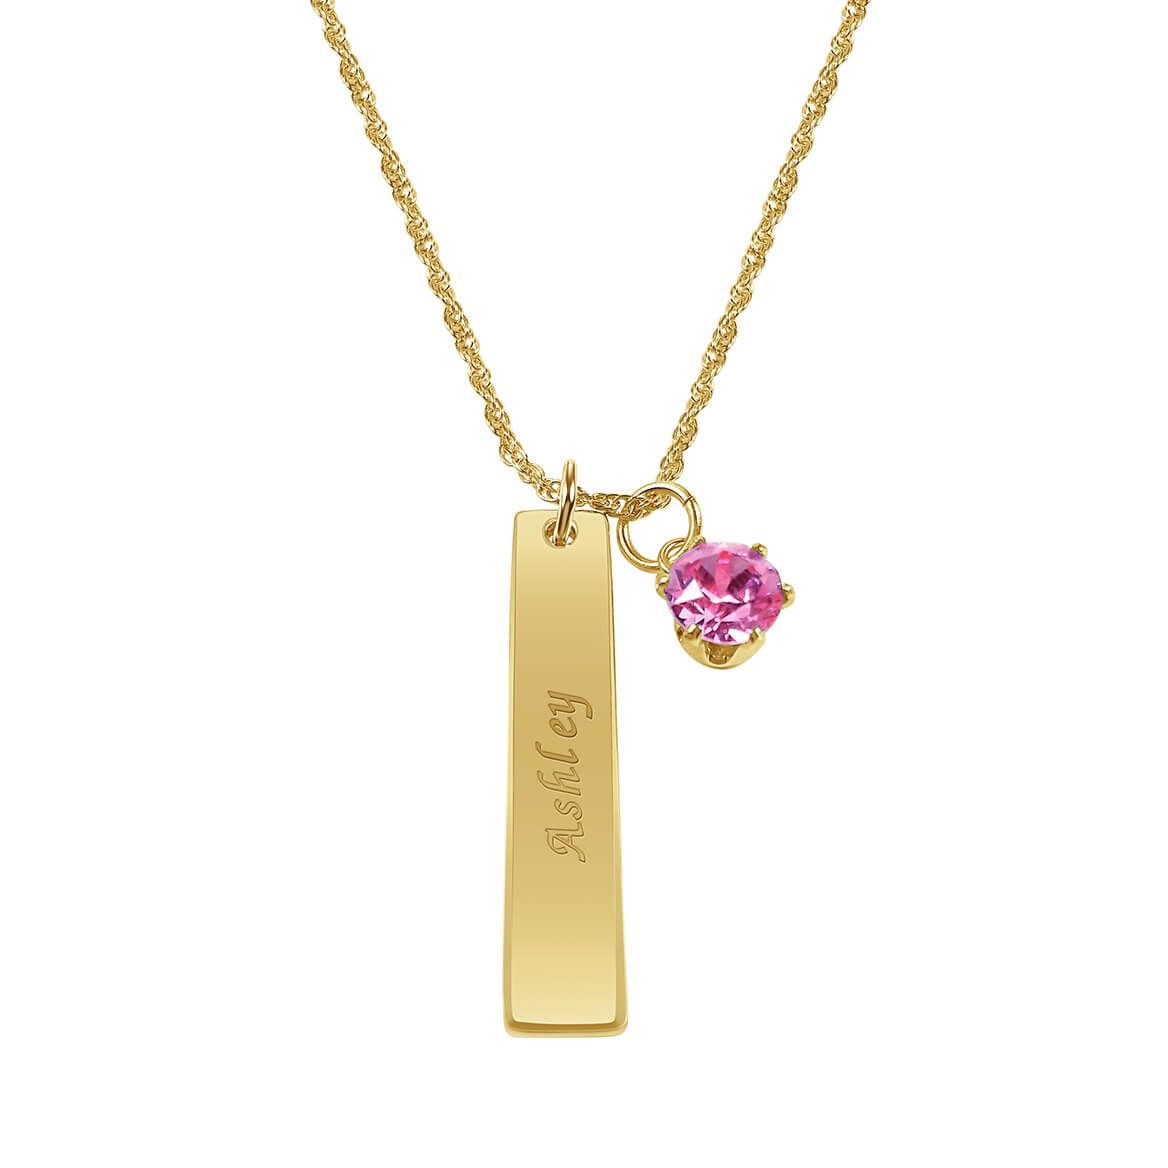 Personalized Ladies ID Pendant with Birthstone Charm-366410